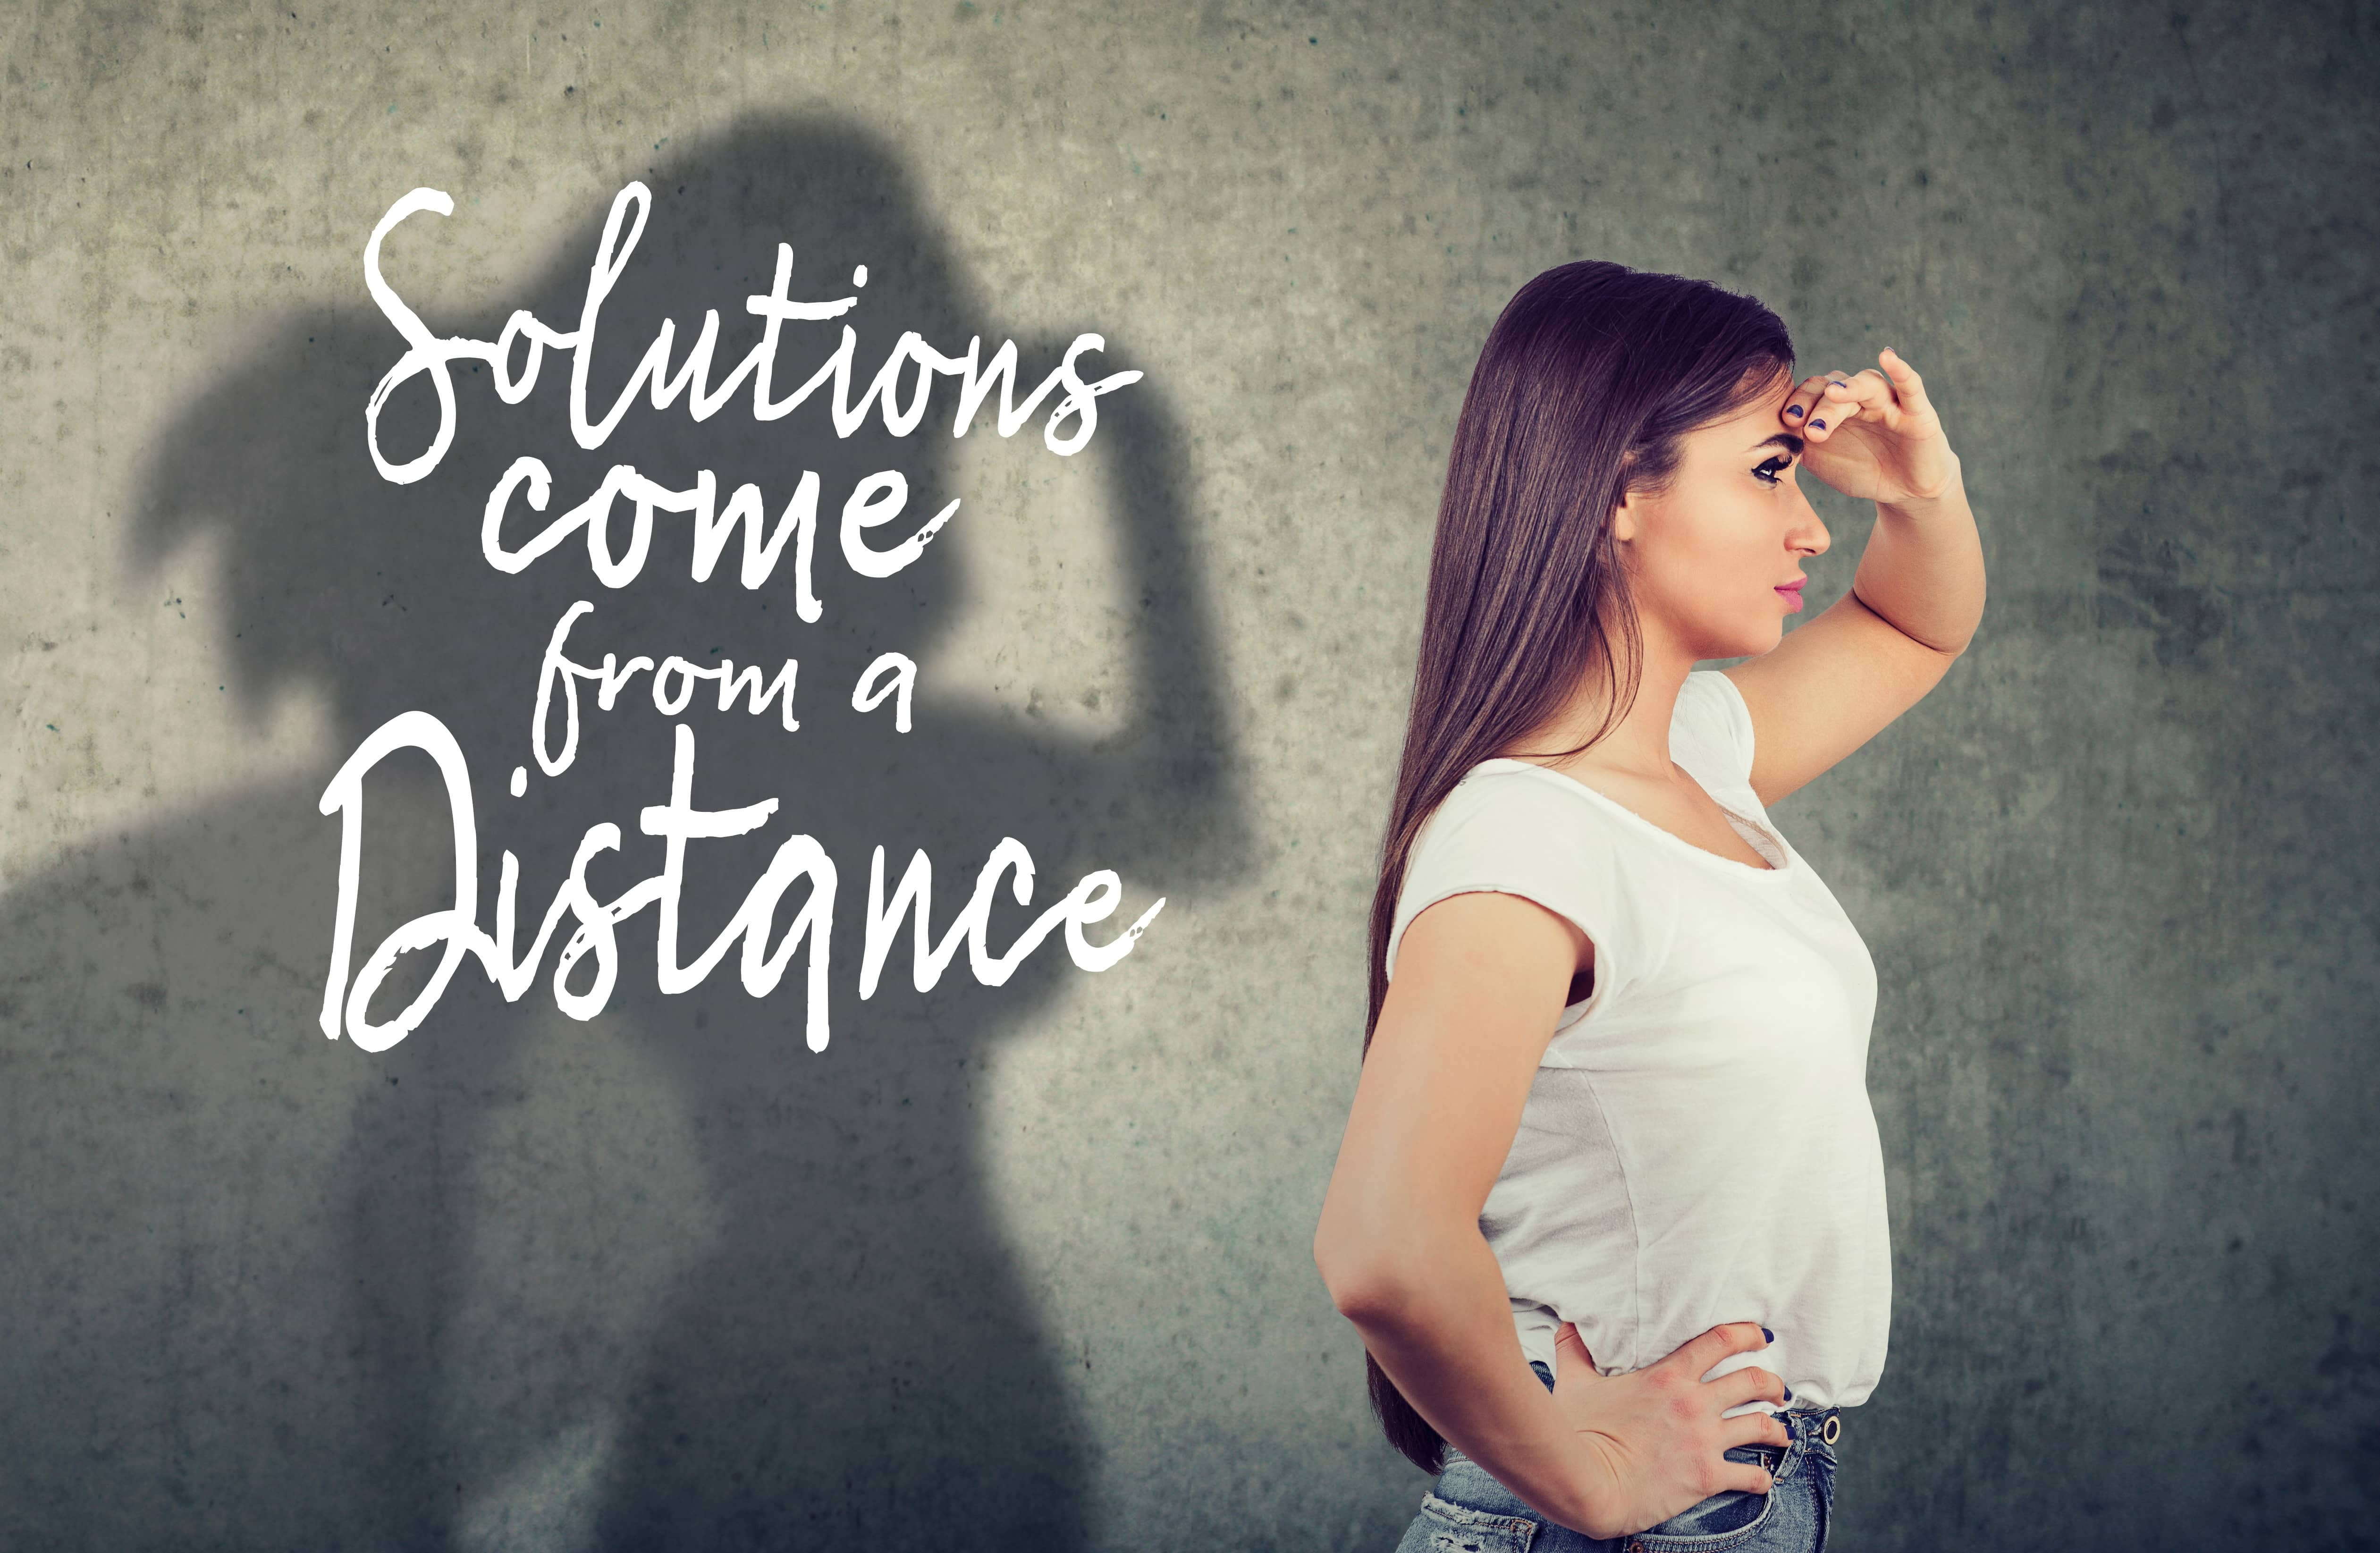 Solutions Come From A Distance